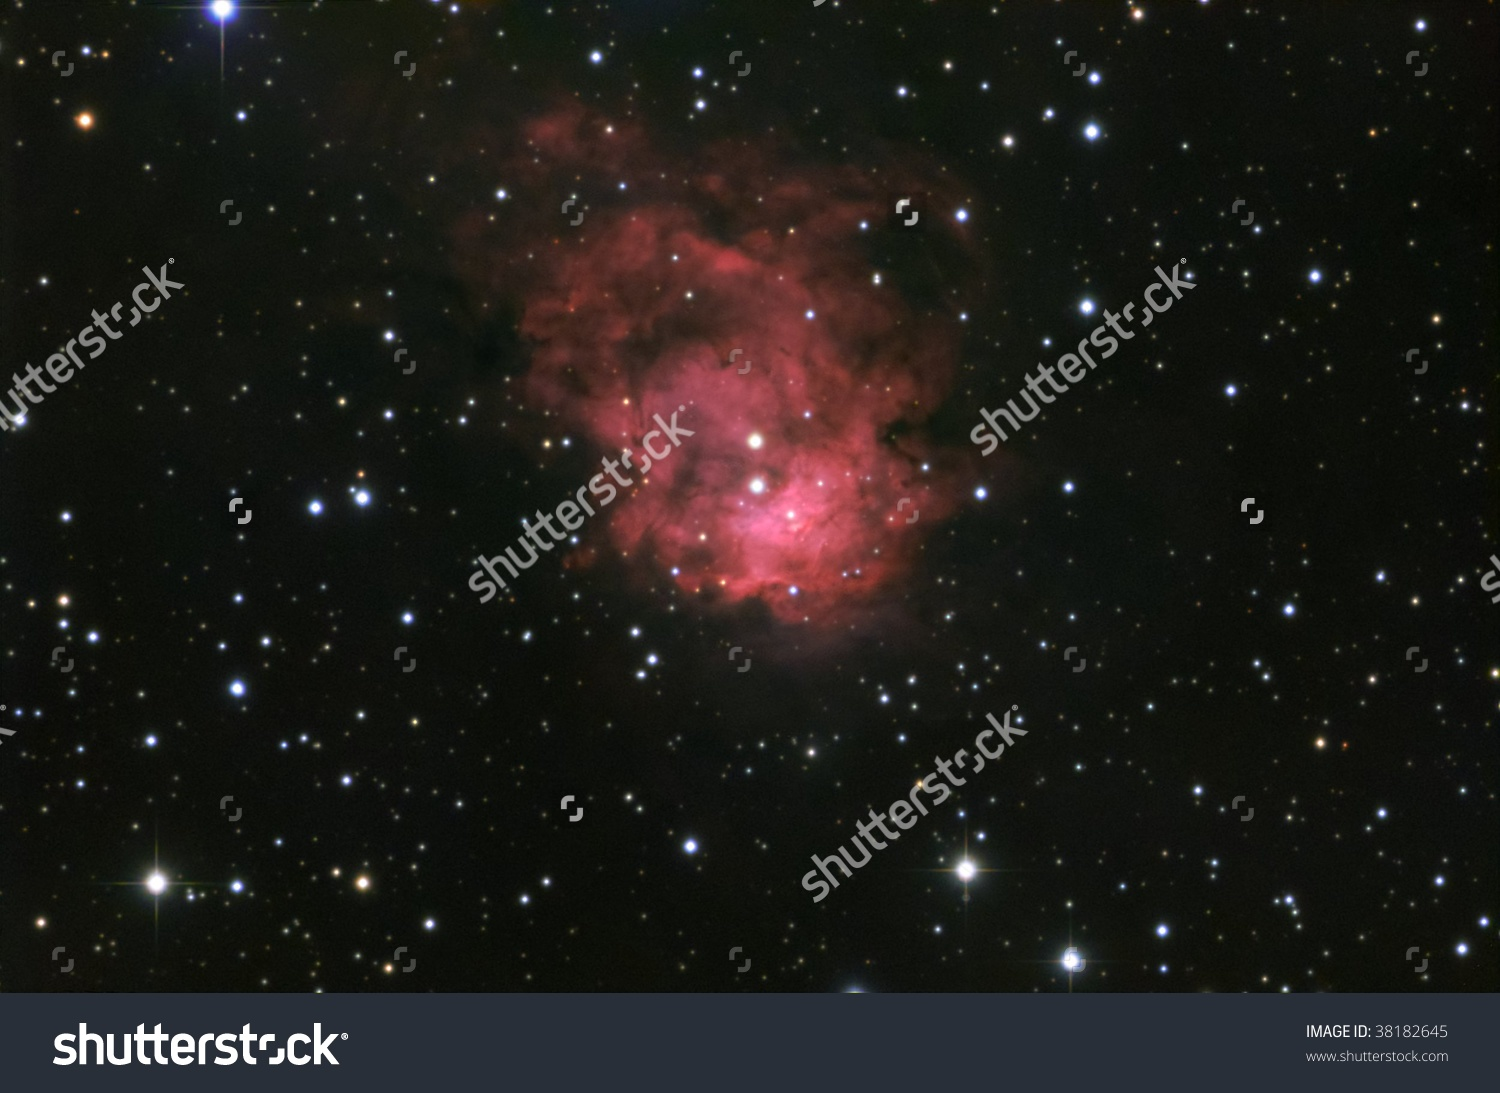 reflection nebula clipart #9